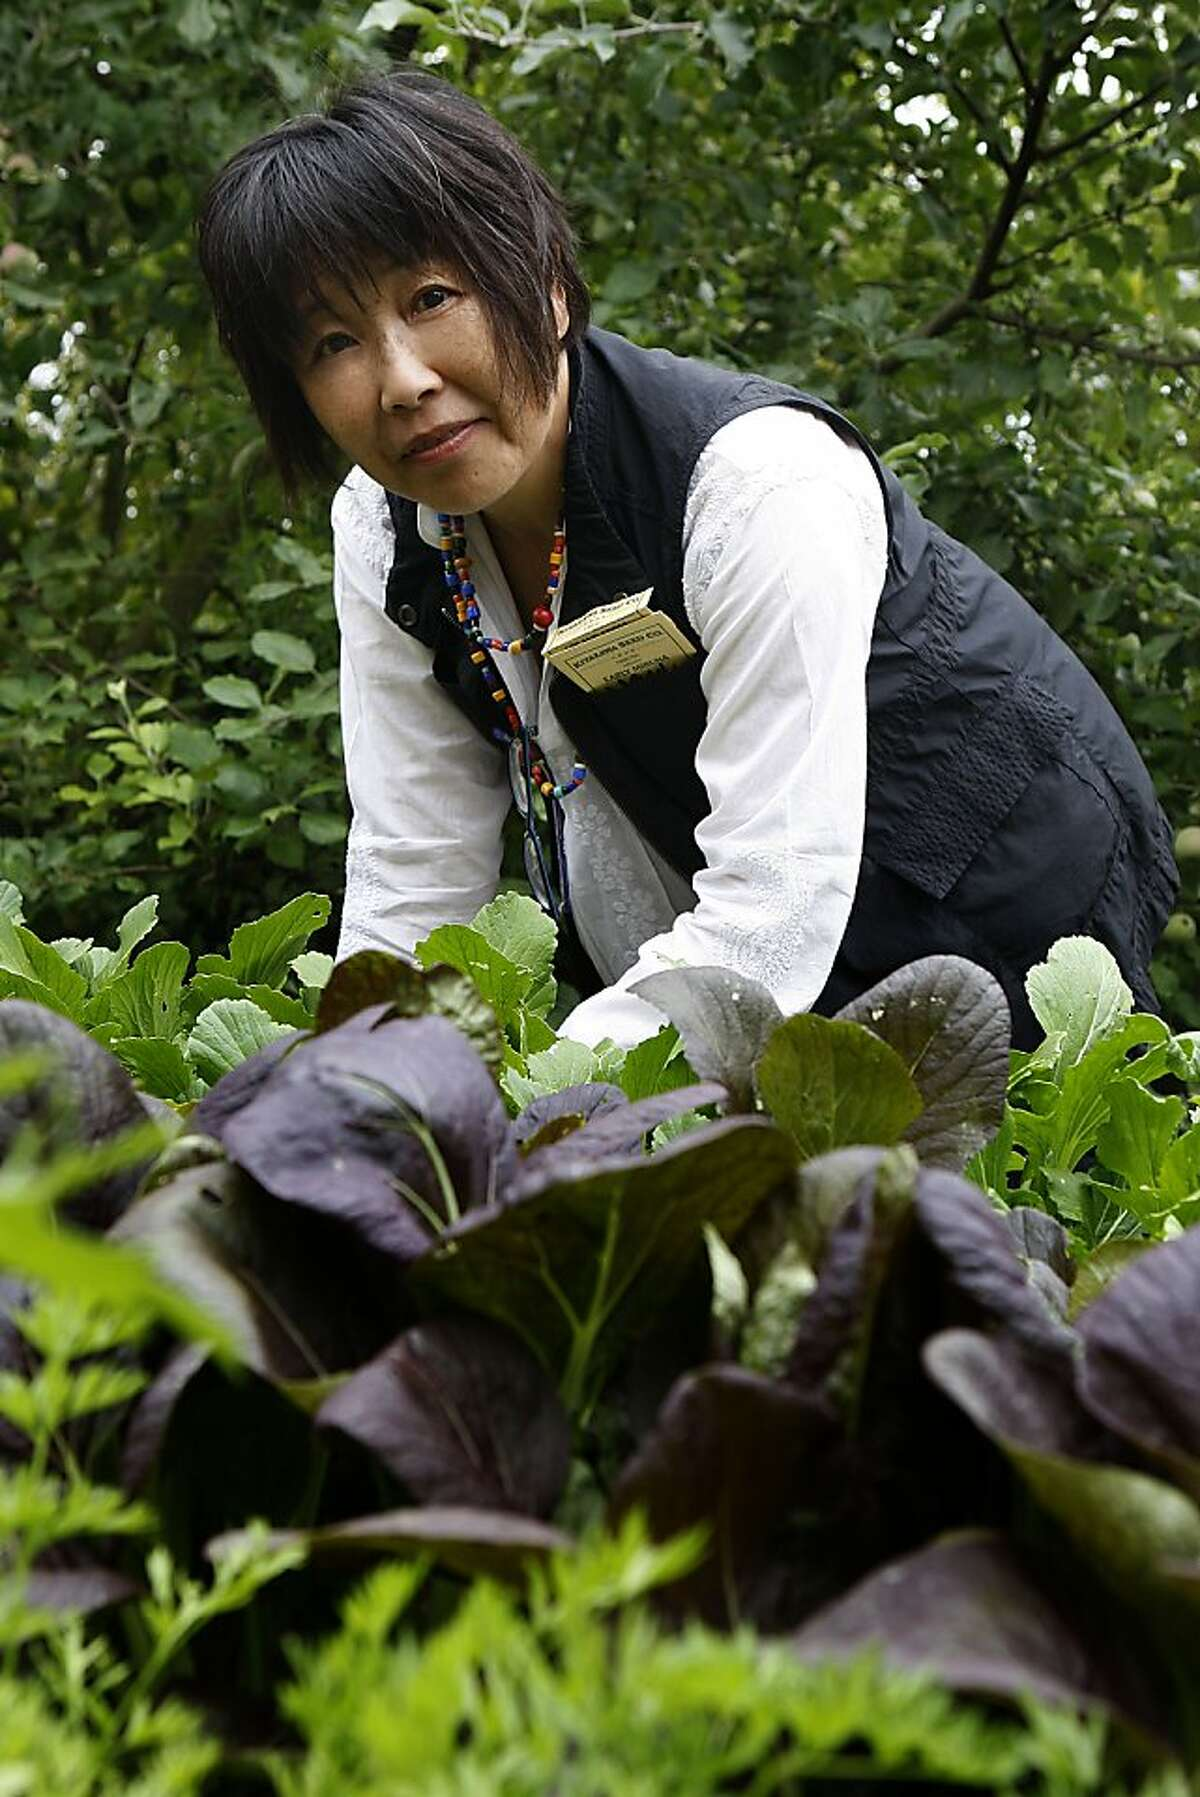 Owner of Kitazawa Seed Co. Maya Shiroyama shows her Pak choi trials from Japan in her test garden in Oakland, Calif., on Tuesday, June 4, 2013.